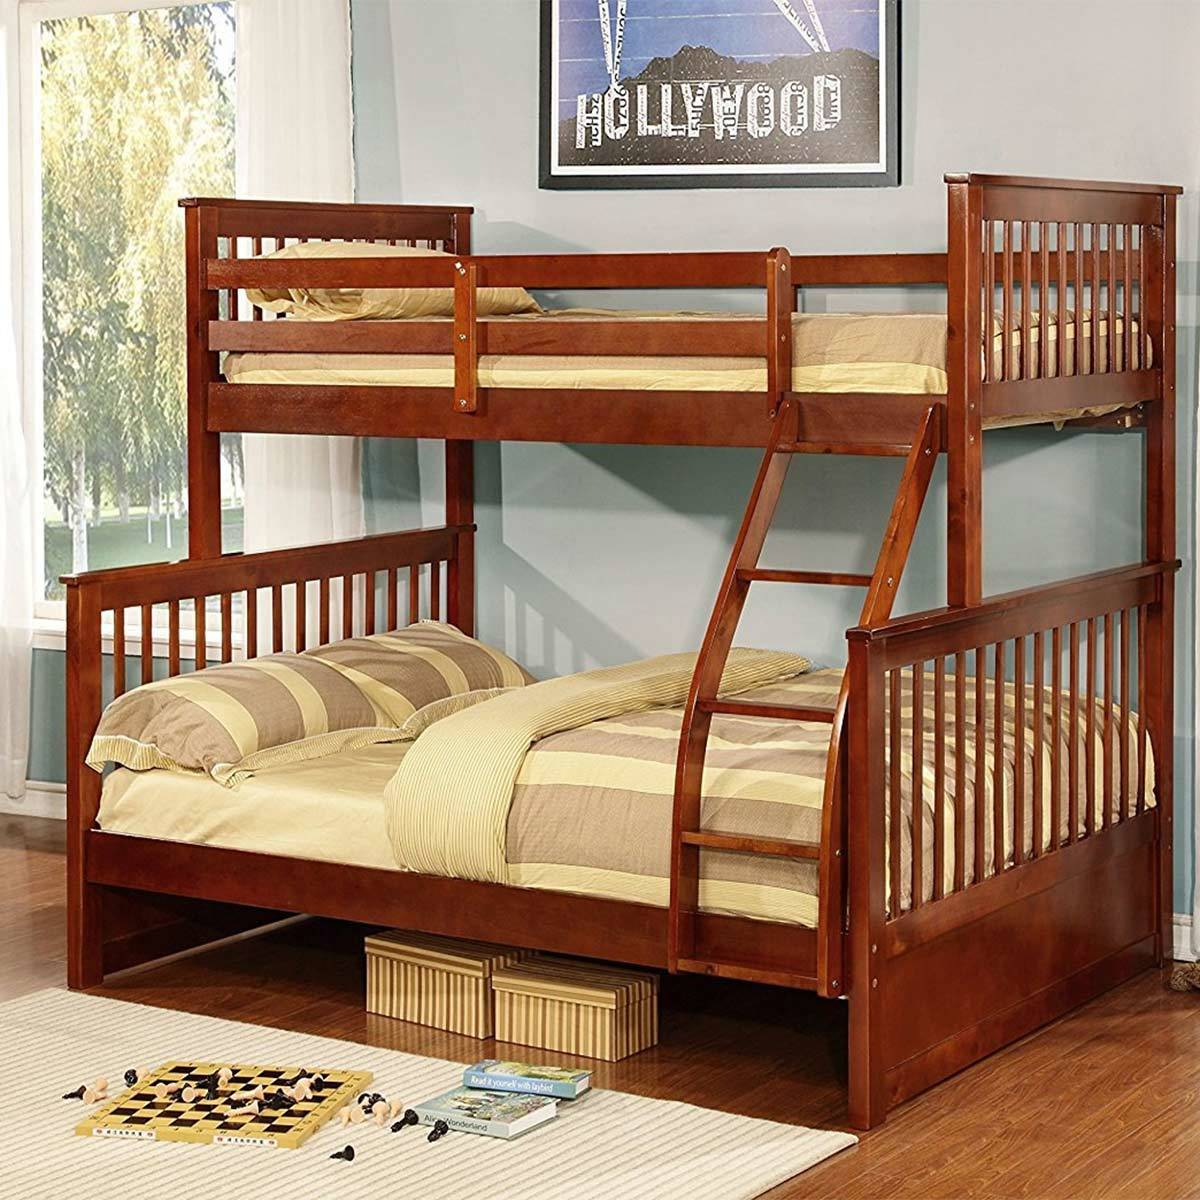 Sturdy Bunk Beds for Adults Are a Good Investment